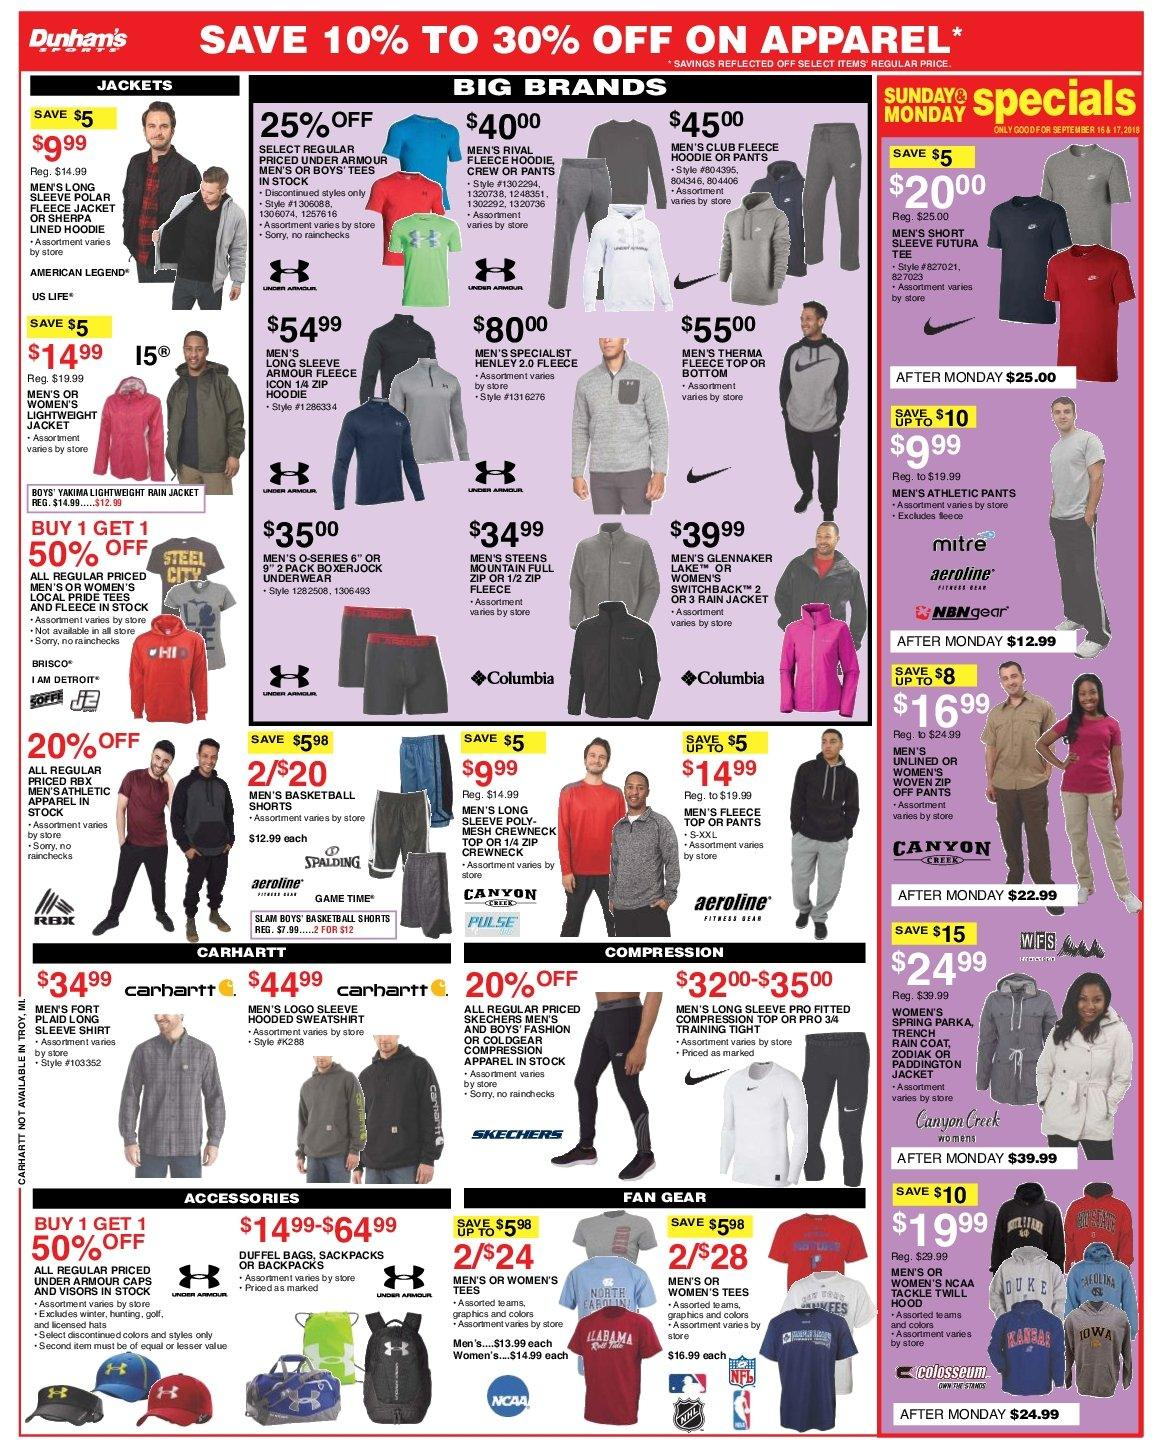 Dunham's Sports Flyer - 09.15.2018 - 09.20.2018 - Sales products - accessories, apparel, bag, coat, sherpa, shirt, shorts, sweatshirt, tee, under armour, underwear, henley, hoodie, jacket, pants, parka. Page 7.